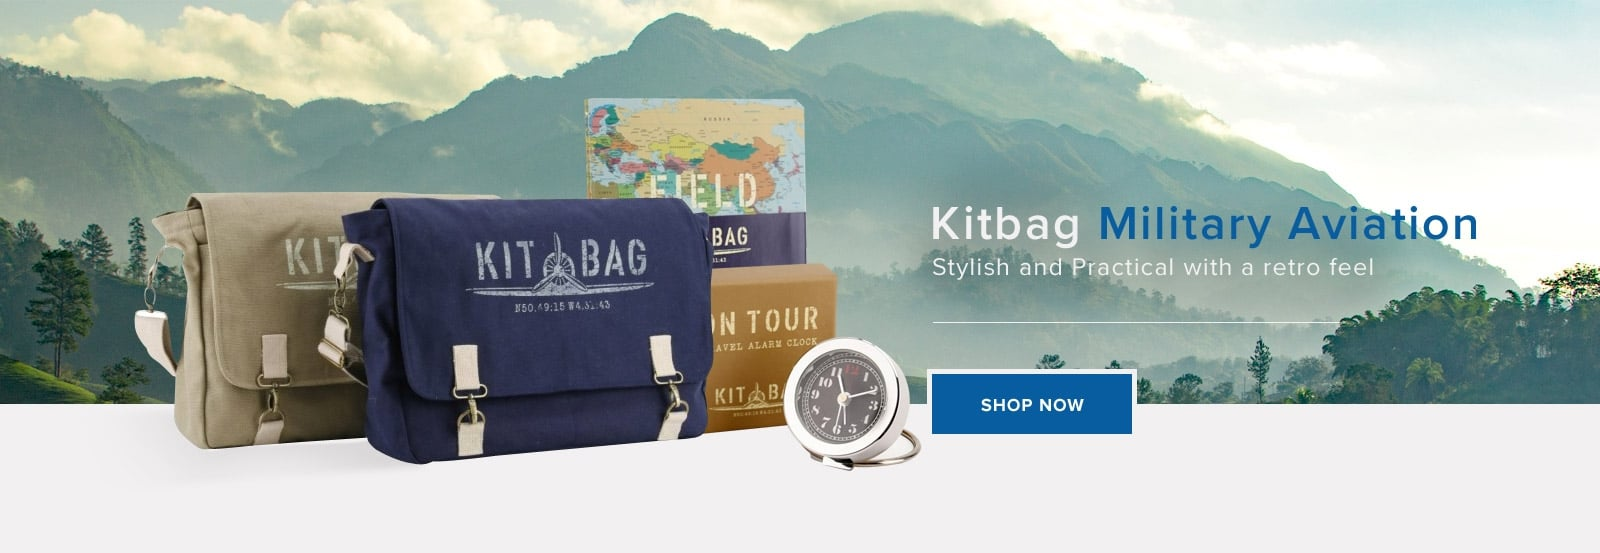 Kitbag Military Aviation